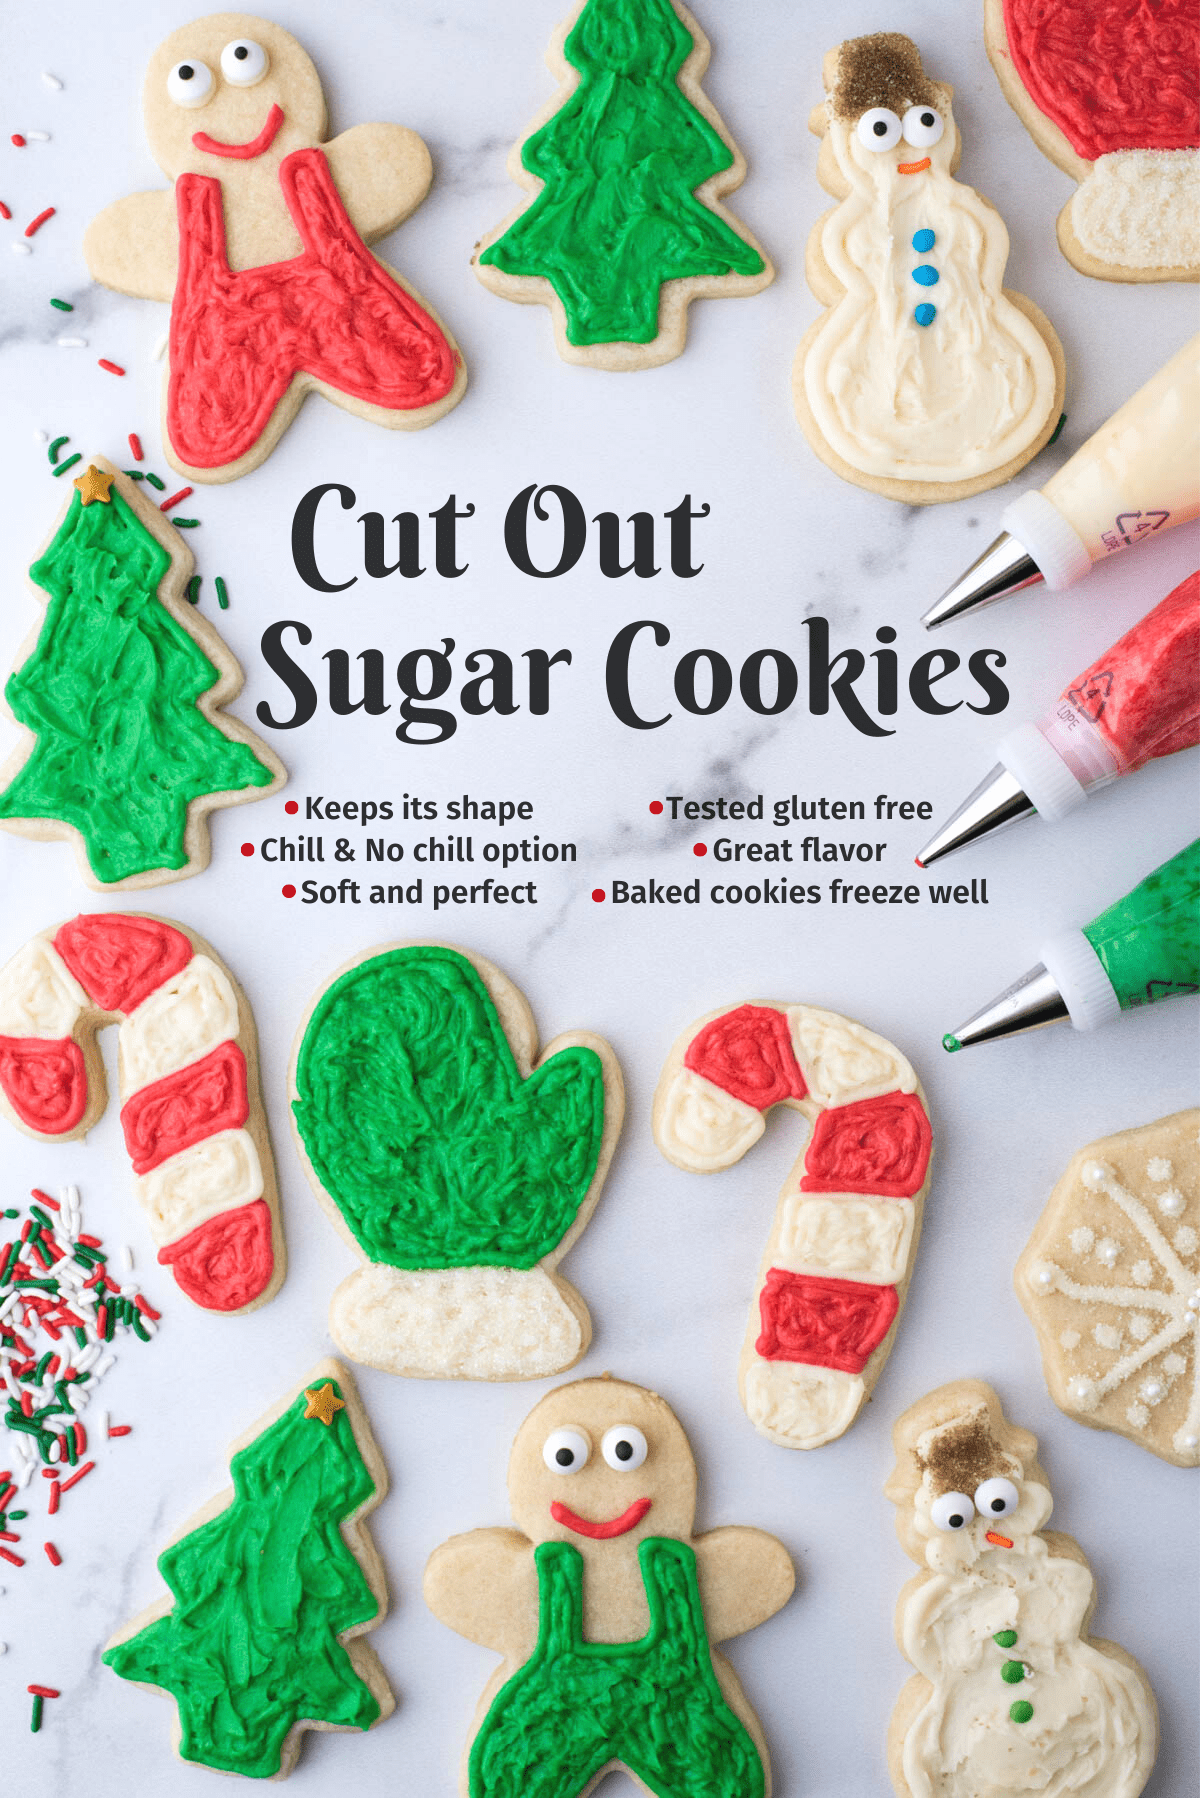 christmas cut out sugar cookies on white background collage with text overlay